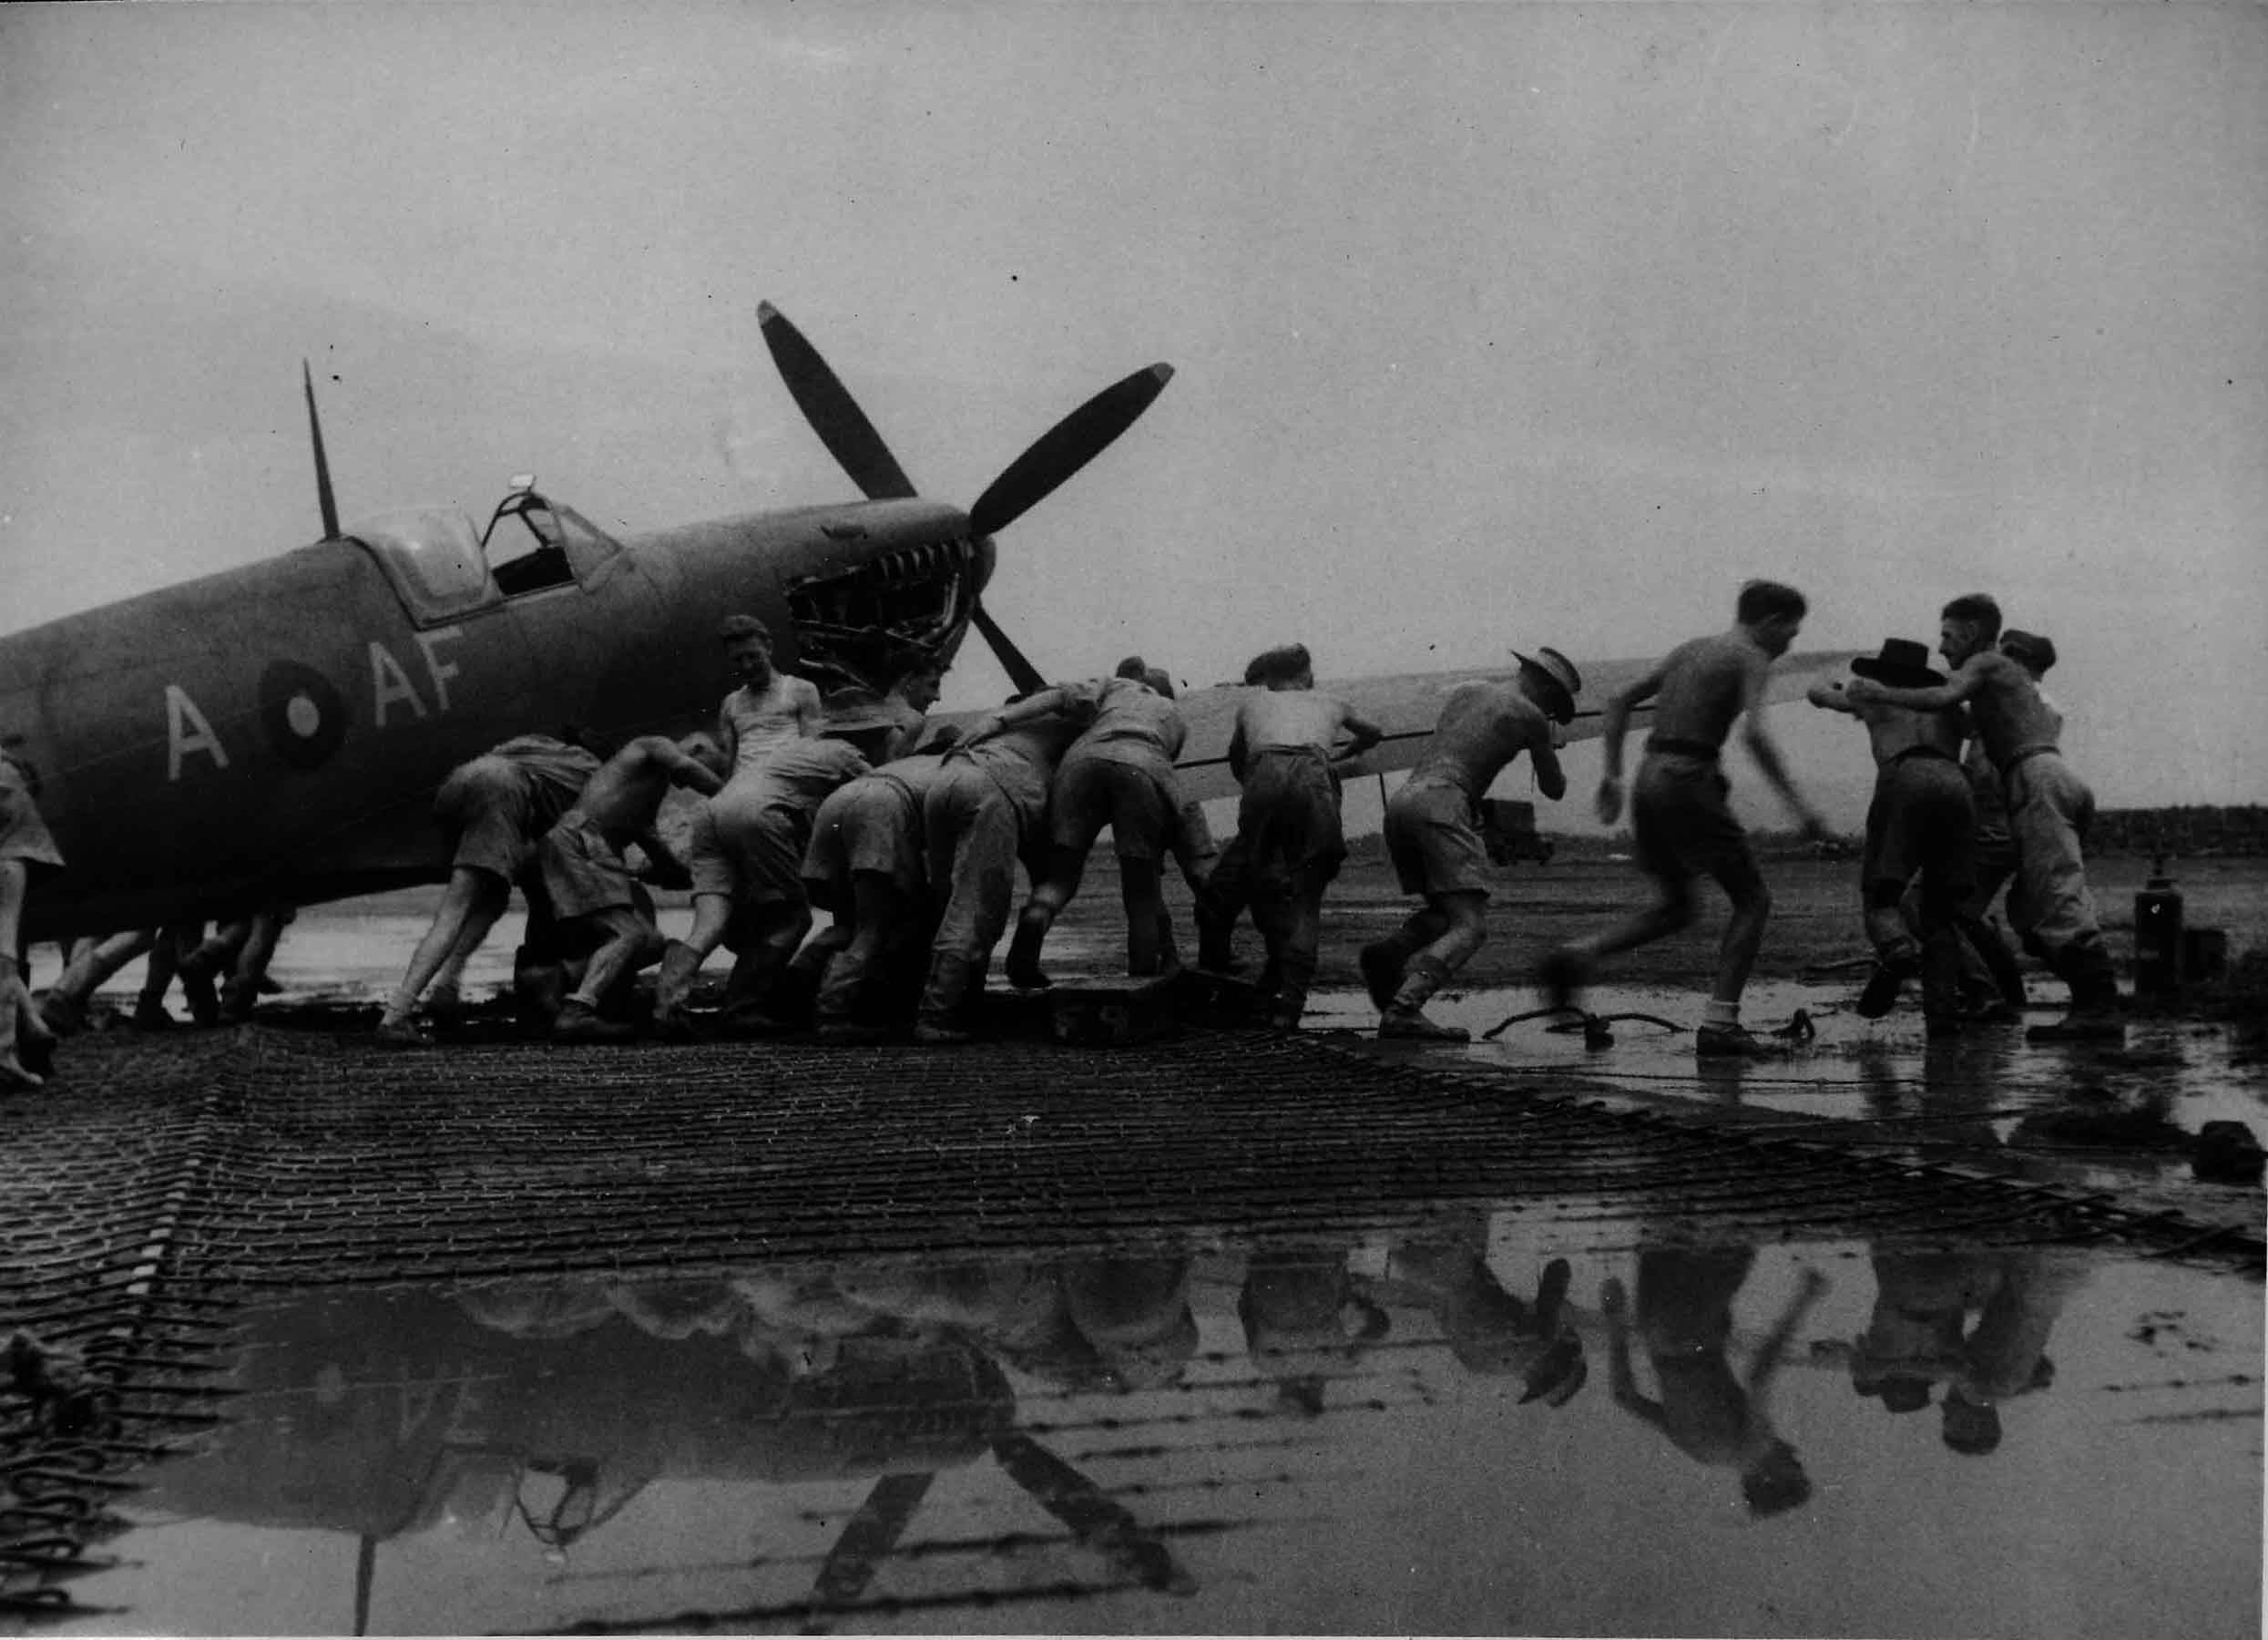 Manhandling a Supermarine Spitfire Mk VIII AF-A of No. 607 'County of Durham' Squadron through the monsoon mud at an advanced airfield on the Burmese border, 1944 (RAFM PC71/19/1742)